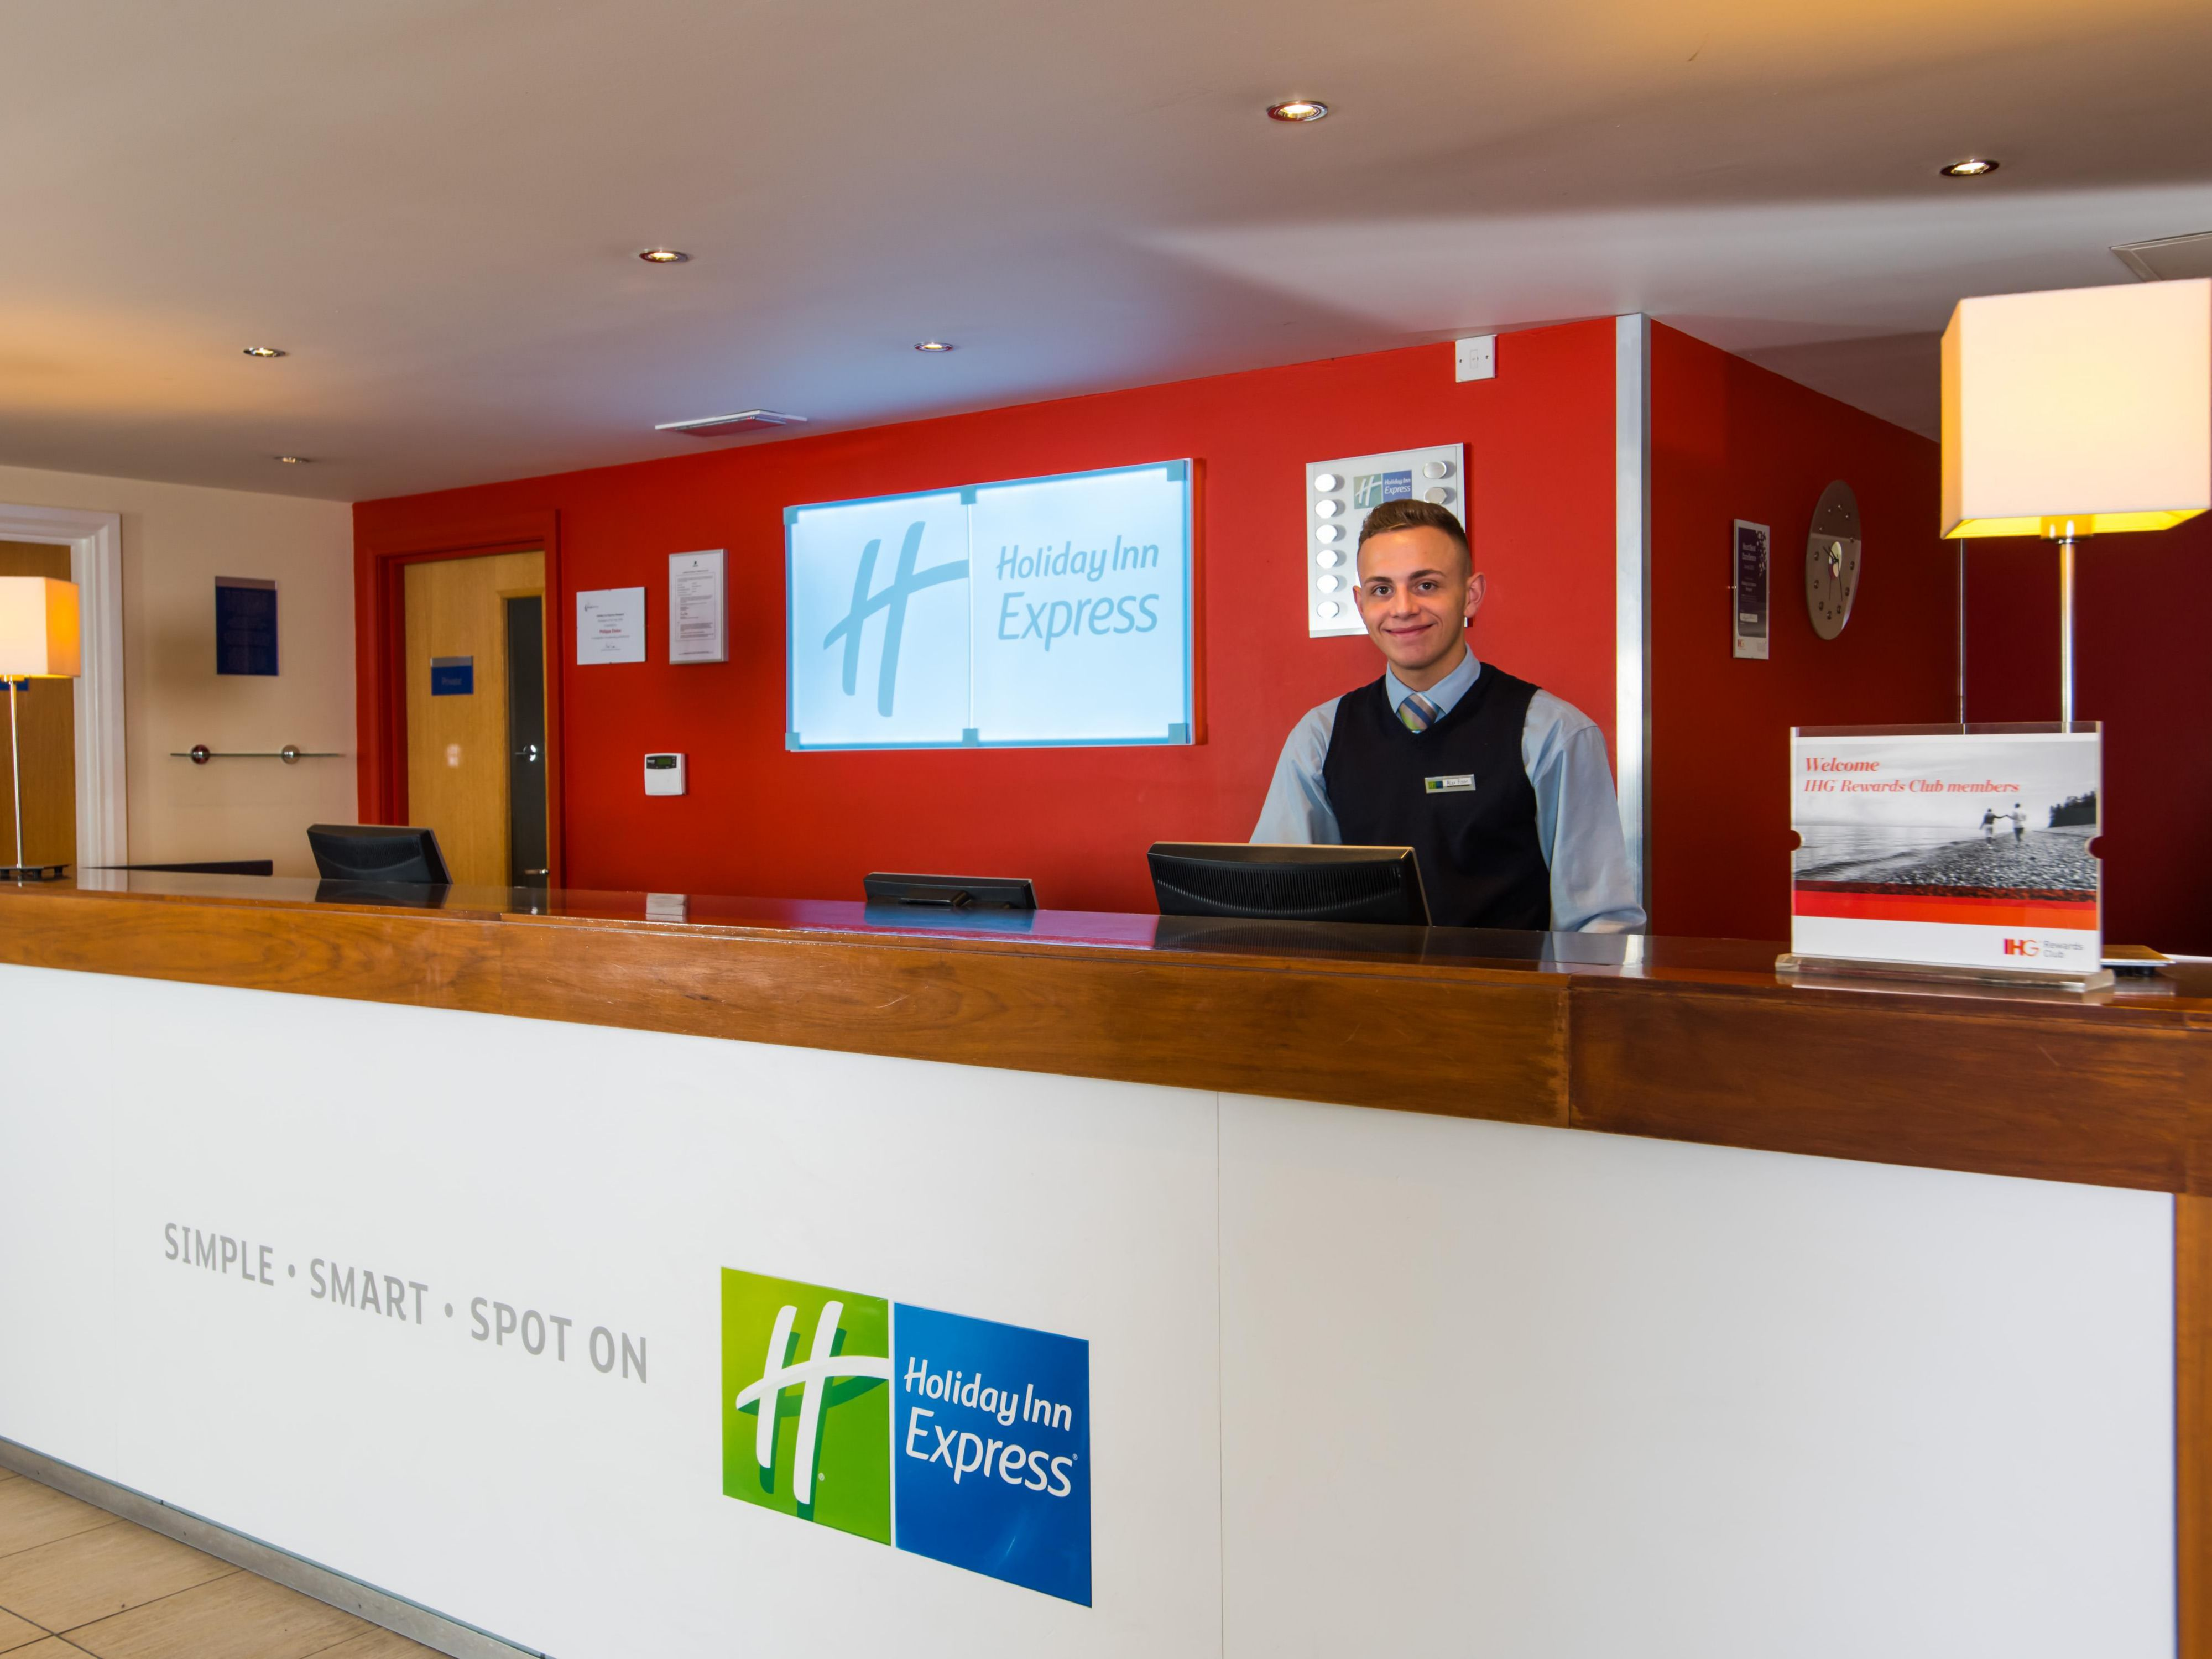 Our friendly team are here for you from check-in until check-out